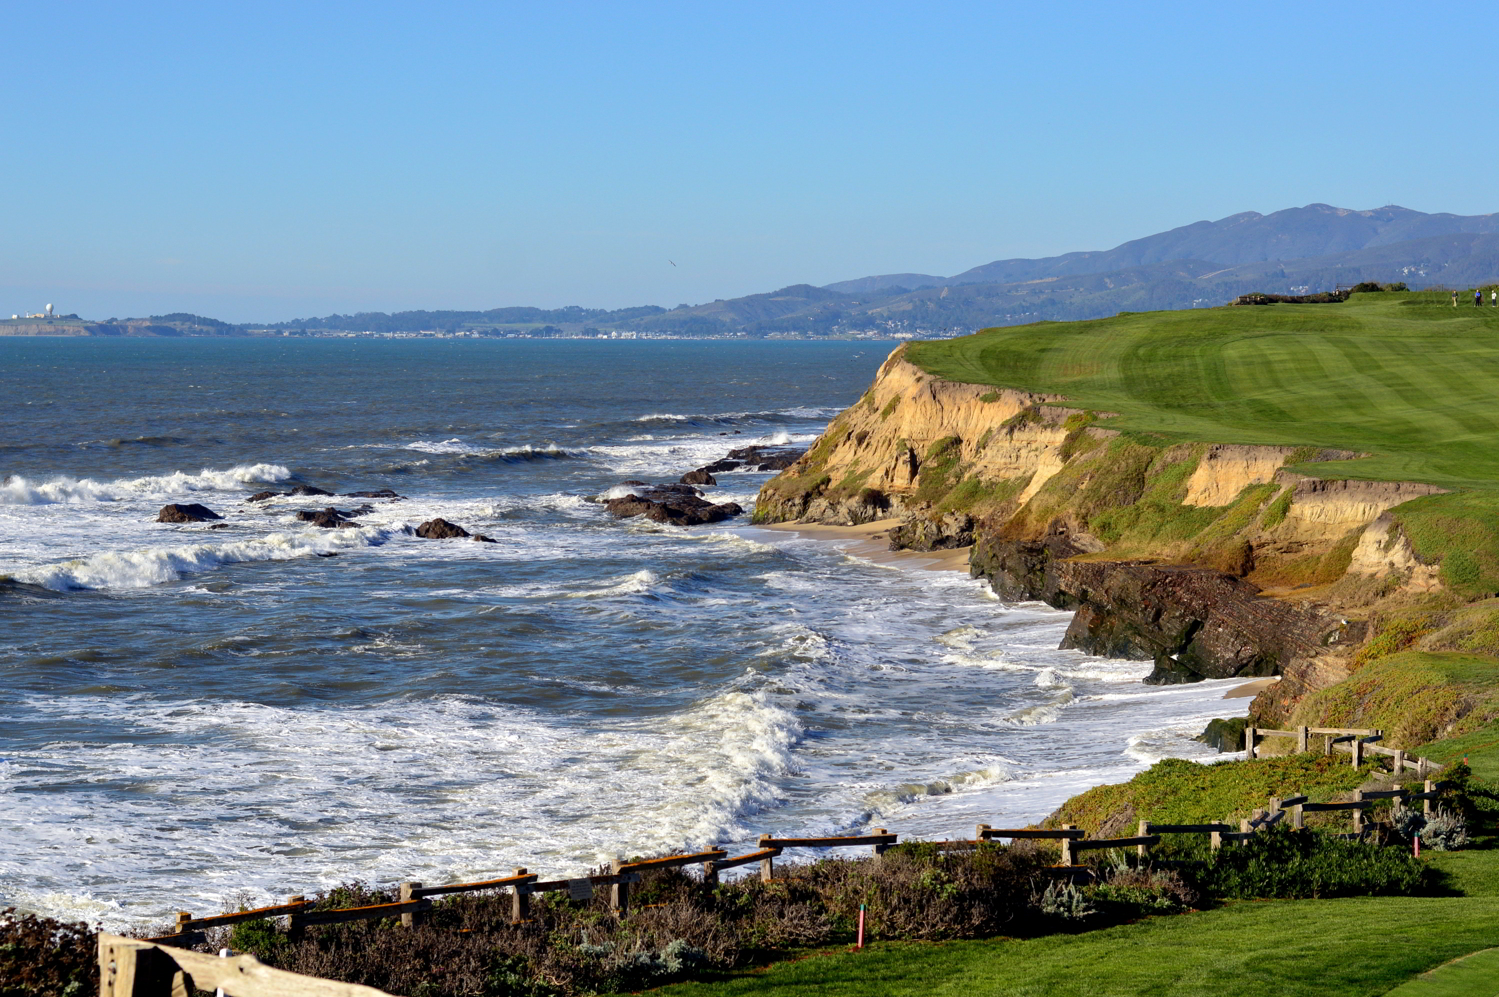 half-mmon-bay-travel-california-style-blogger-guide-things-to-do 1